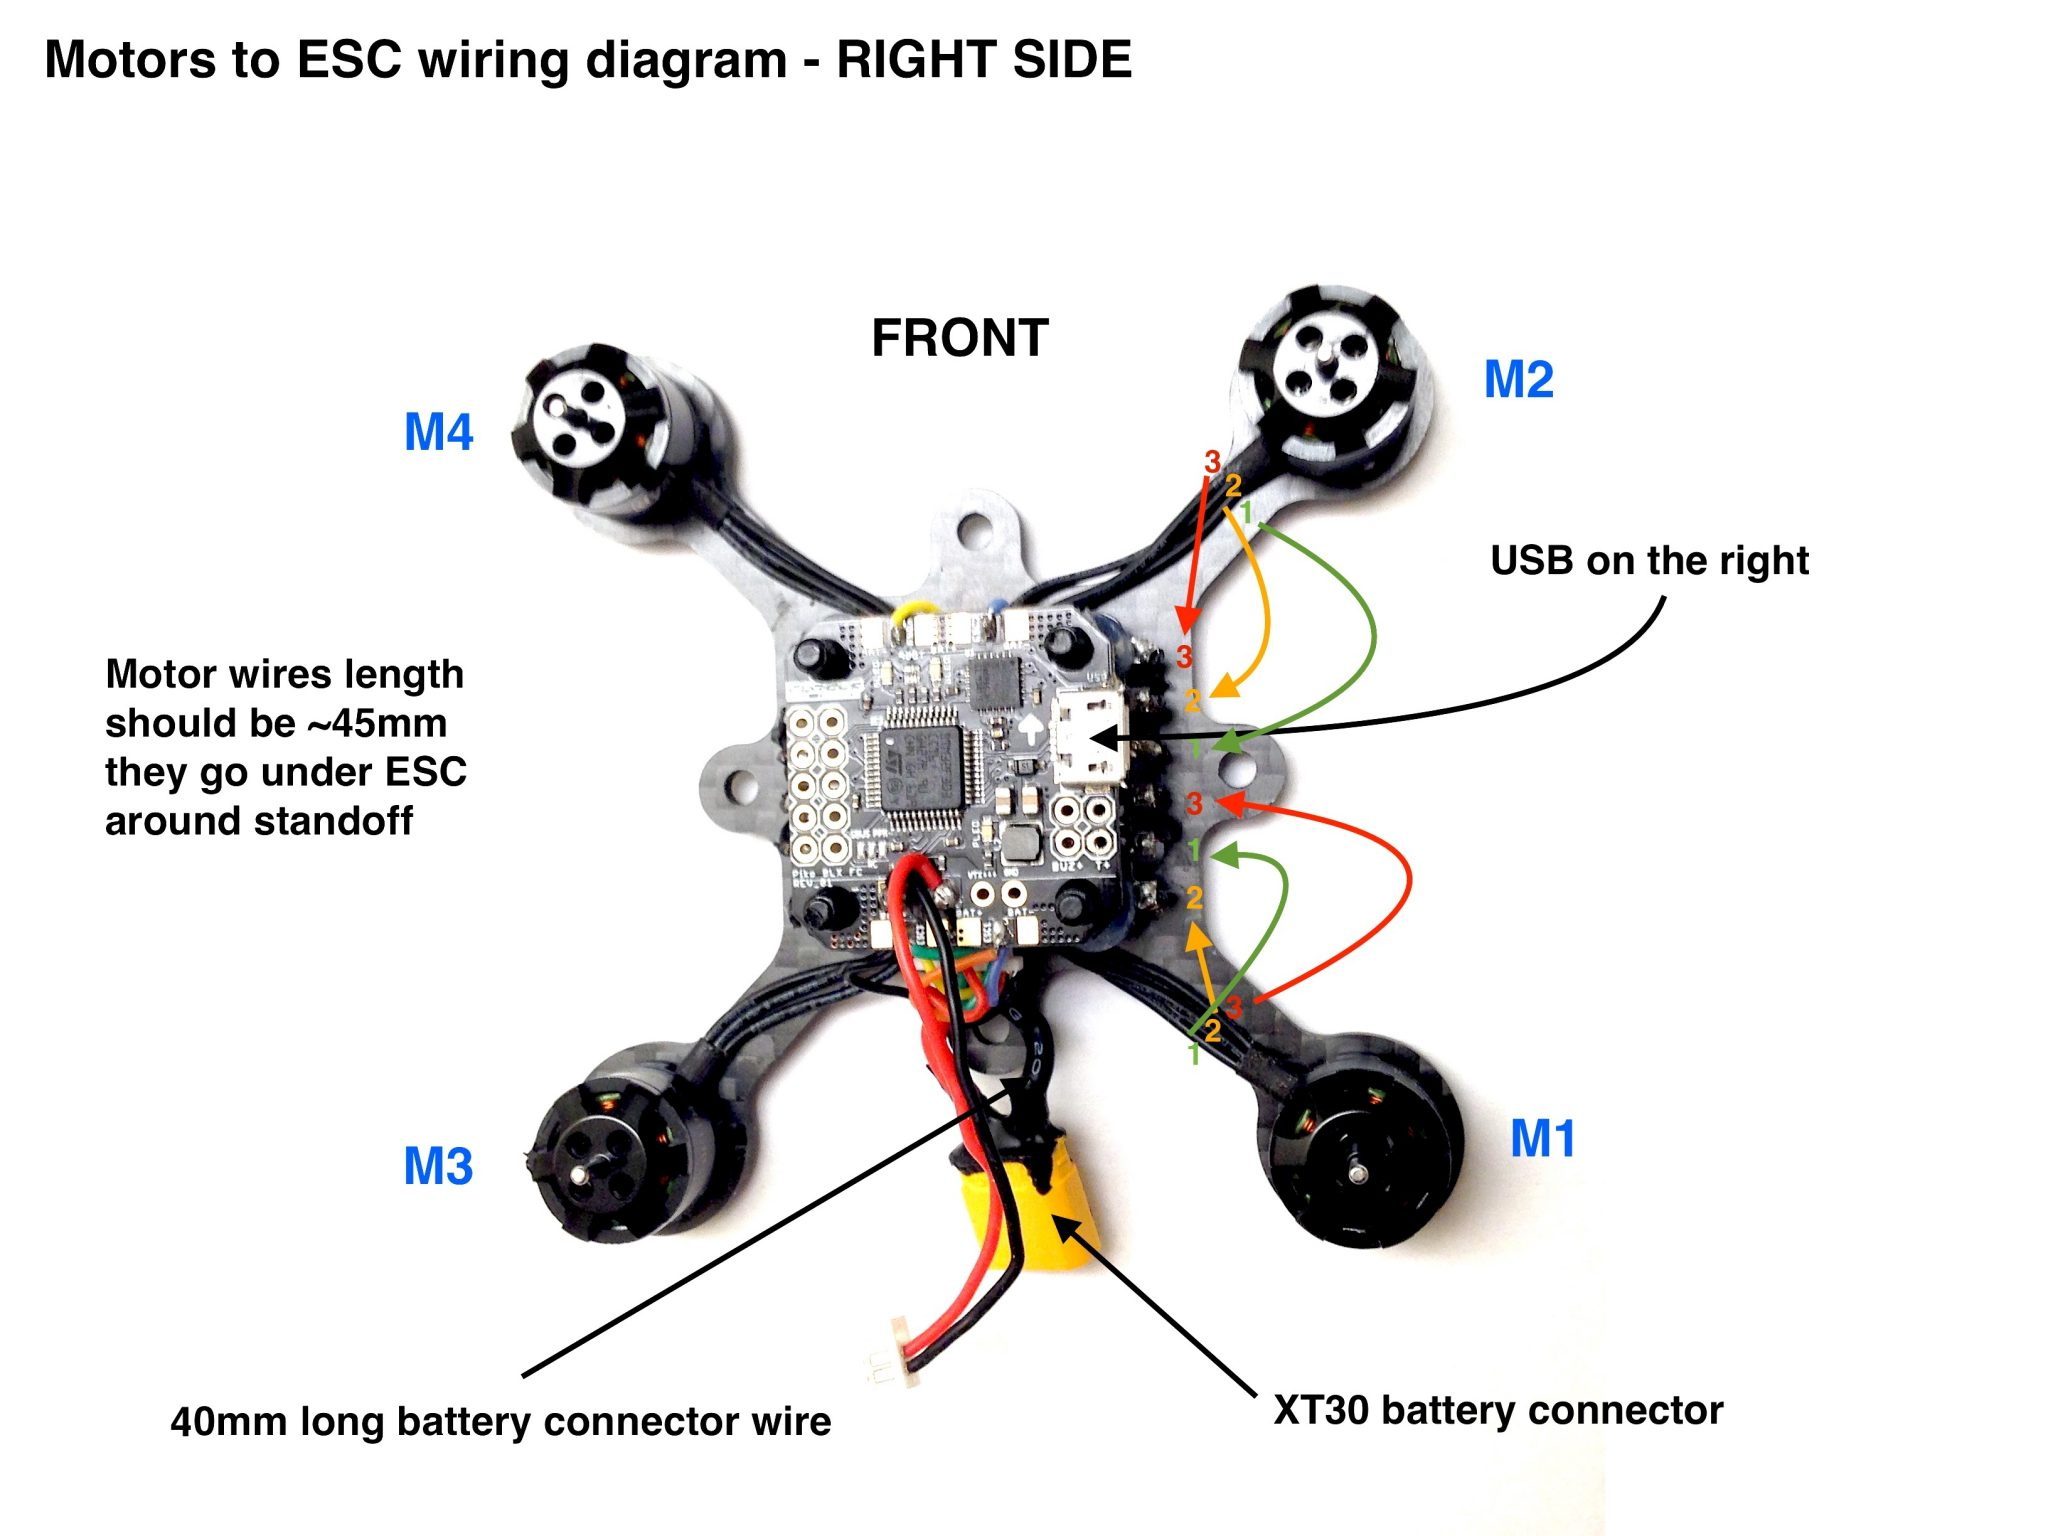 Quadcopter esc motor wiring electrical work wiring diagram flexrc pico core motors wiring diagram flex rc rh flexrc com fpv quadcopter wiring quadcopter wiring asfbconference2016 Images